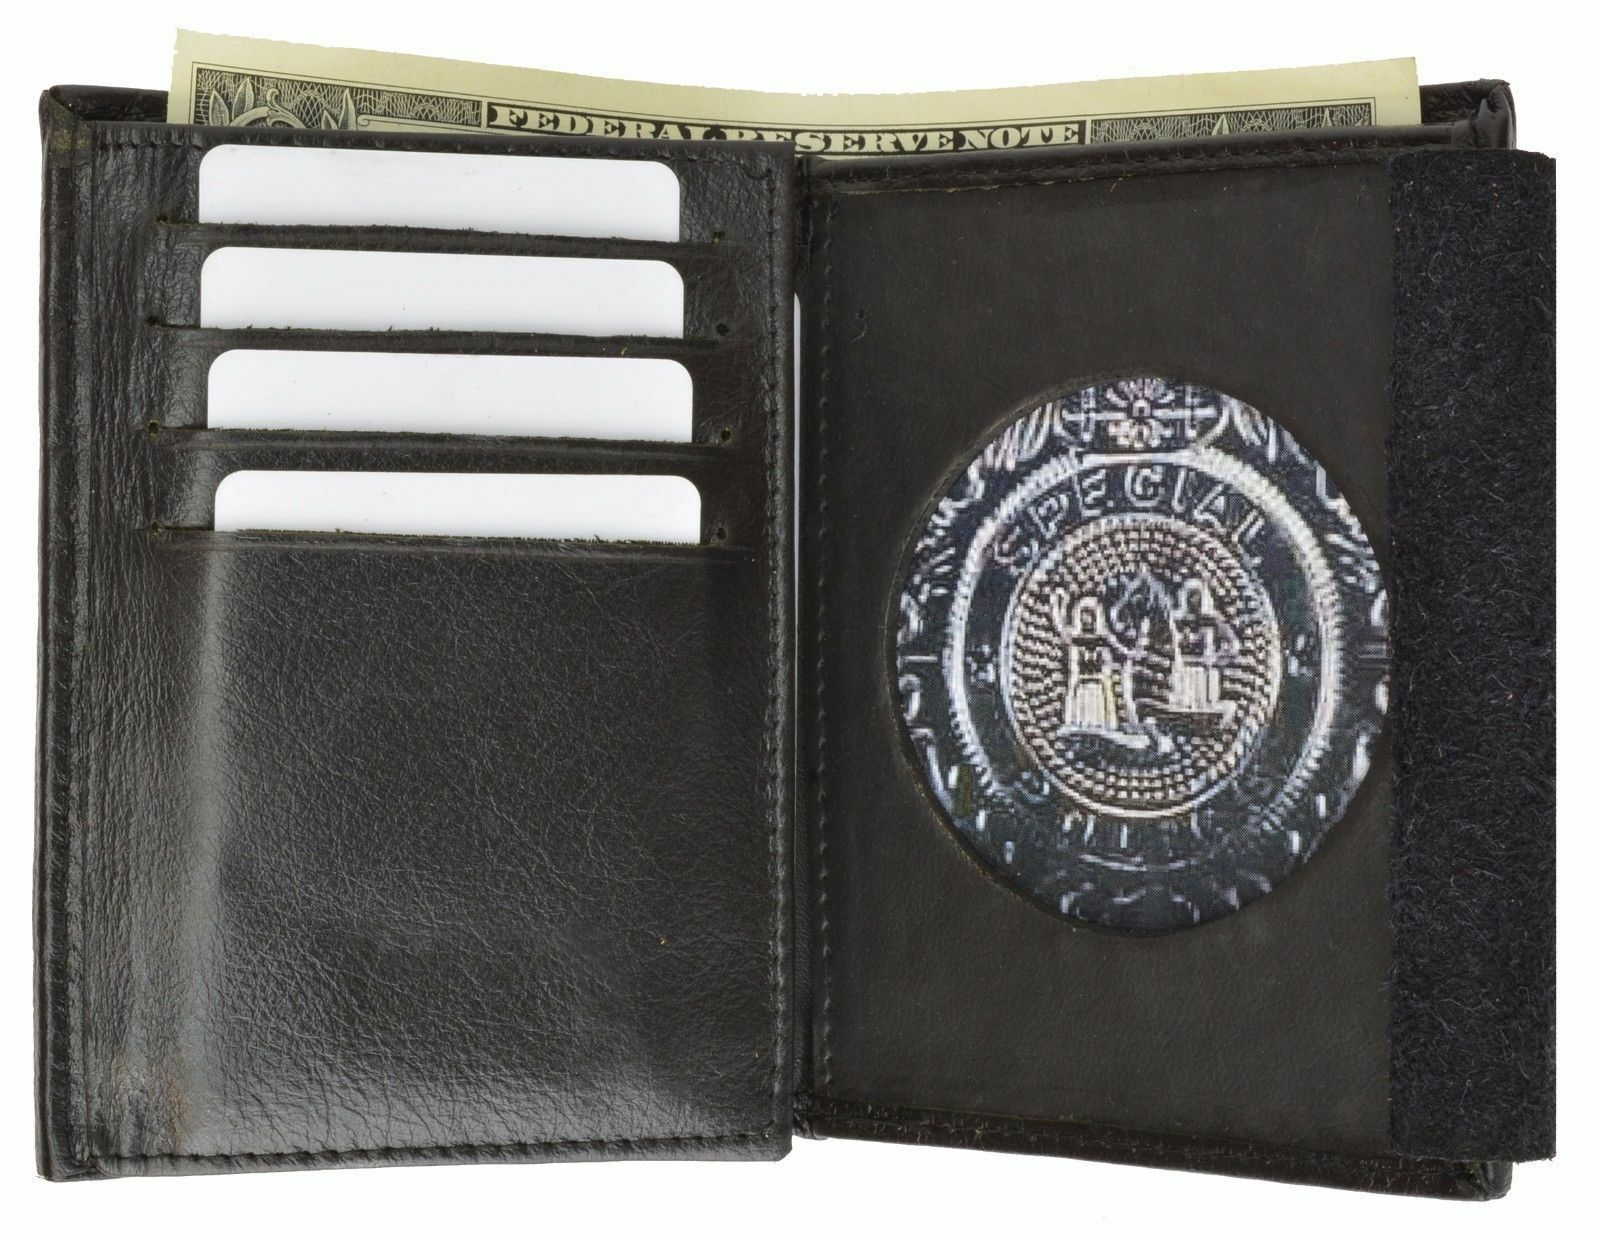 Police Sheriff Security Fire Badge /& ID Black Leather Wallet Case Shape 1379